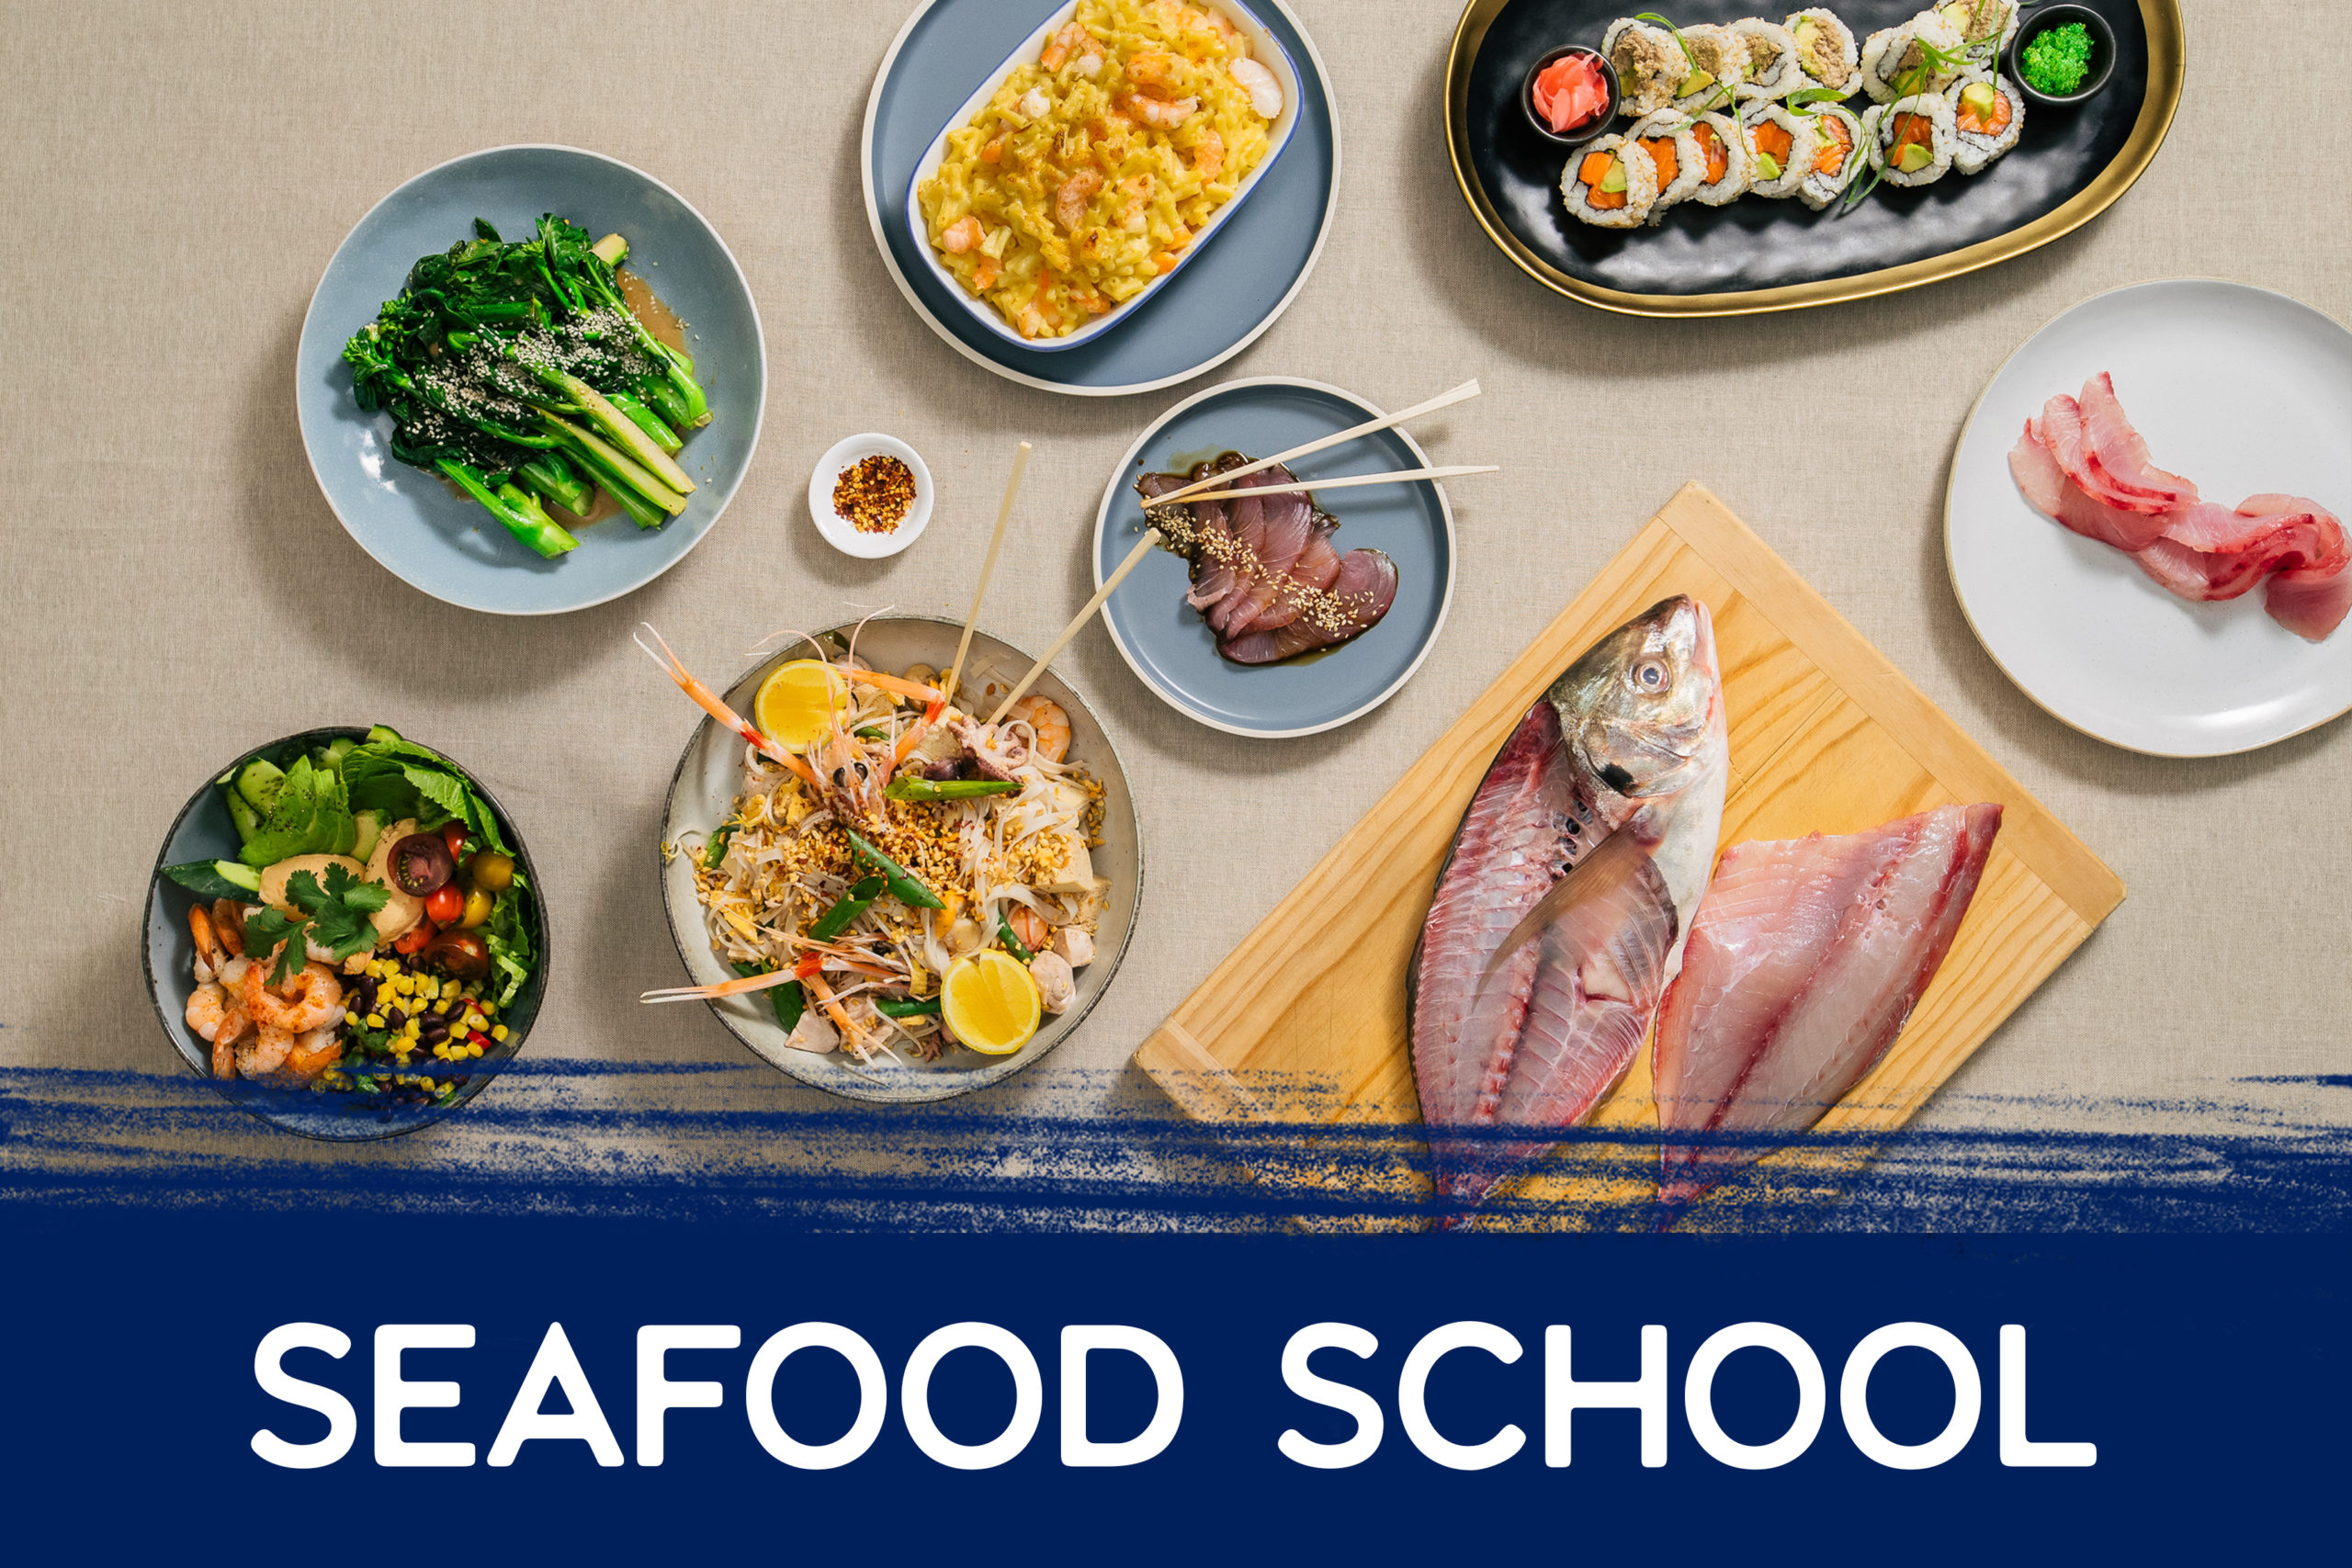 Seafood School at Auckland fish market